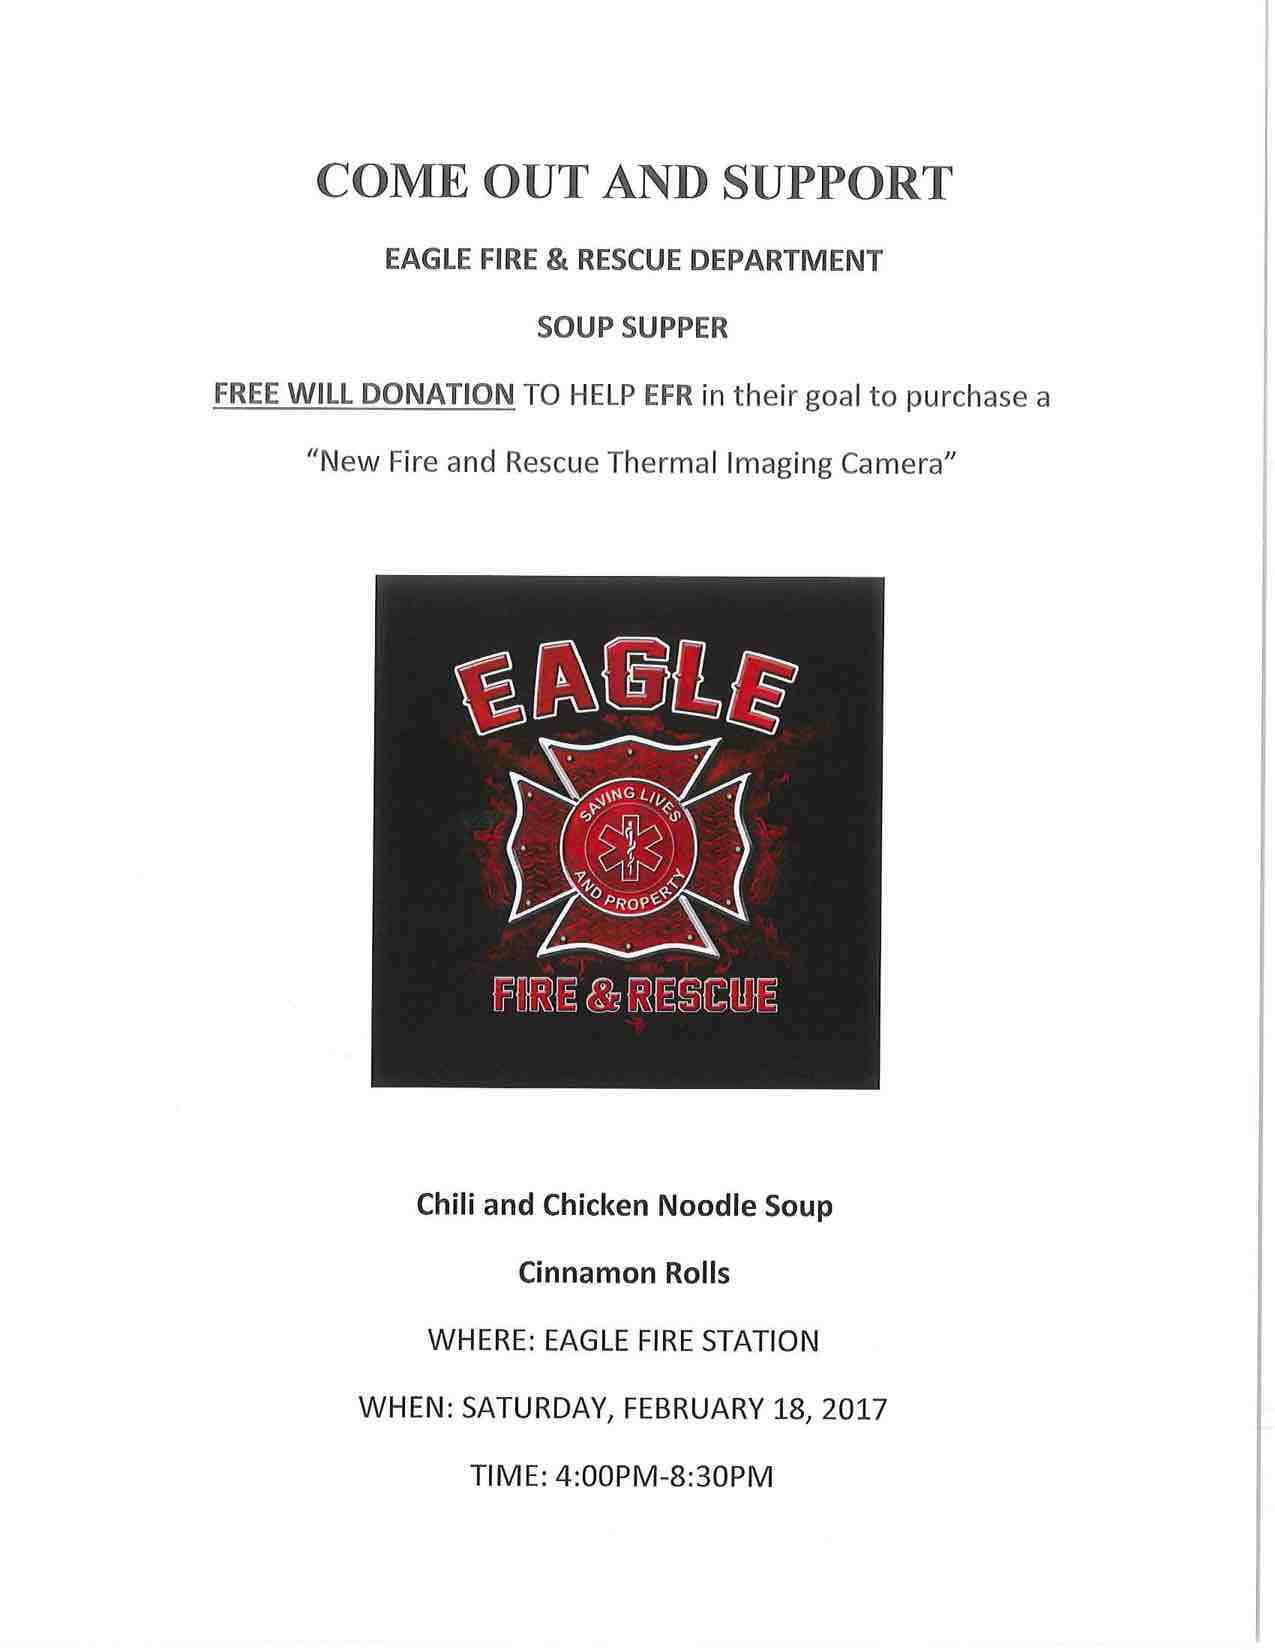 Fire and Rescue Soup Supper 2017